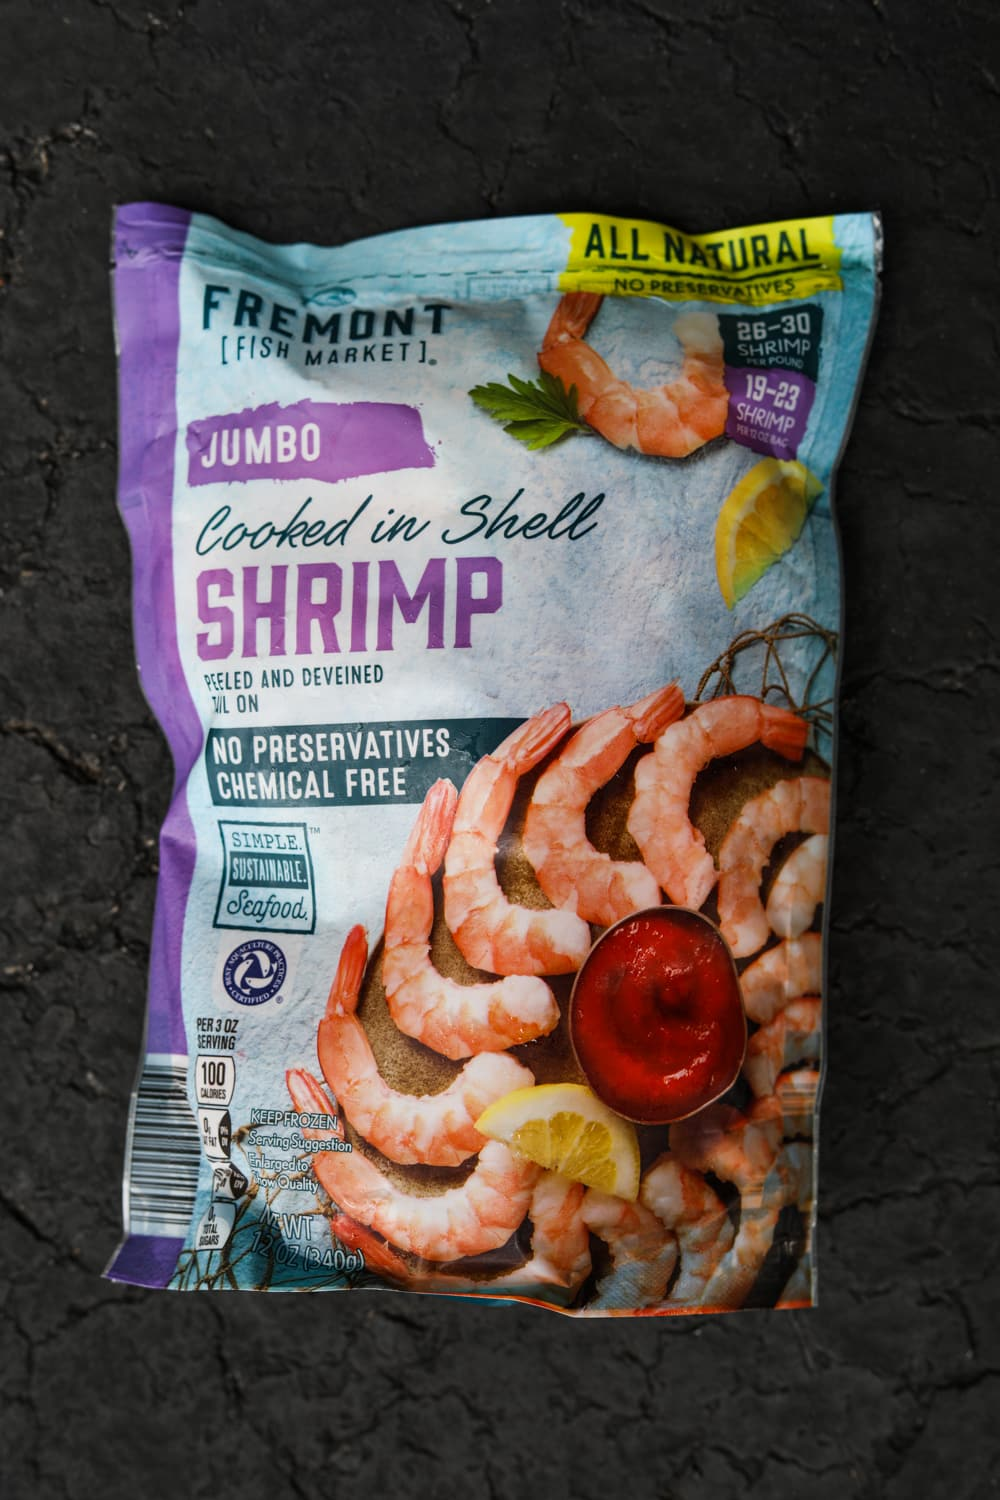 A large package of cooked shrimp.